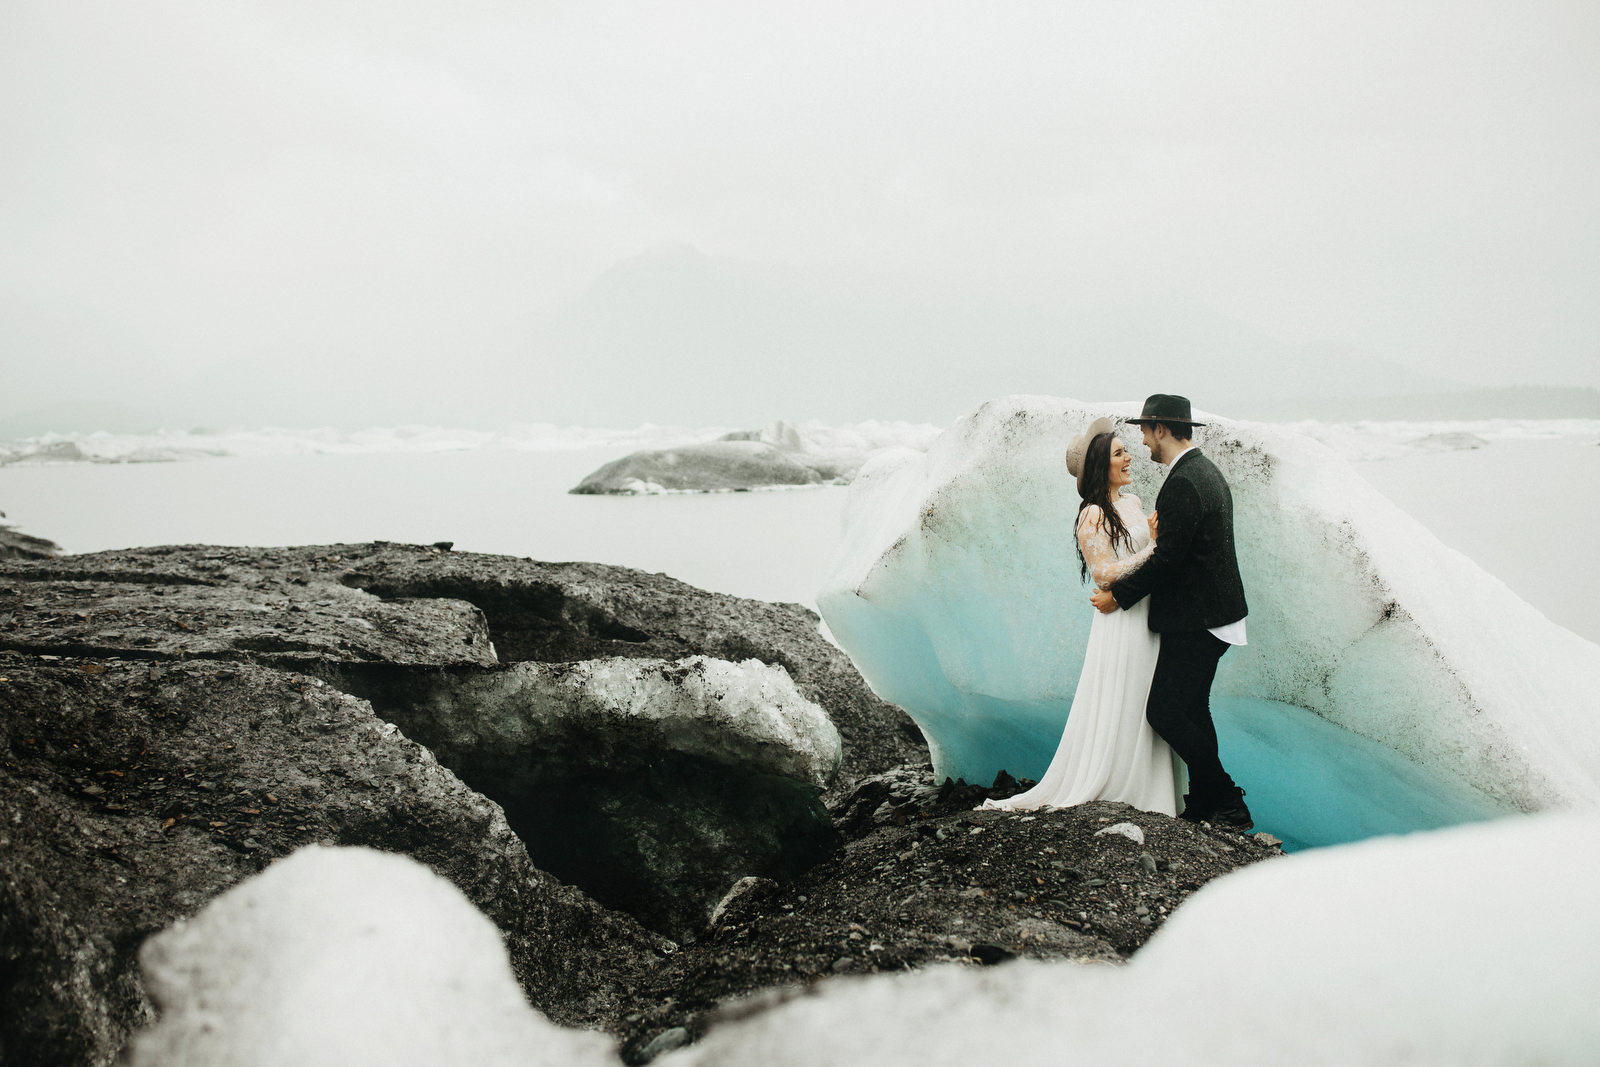 athena-and-camron-alaska-elopement-wedding-inspiration-india-earl-athena-grace-glacier-lagoon-wedding104